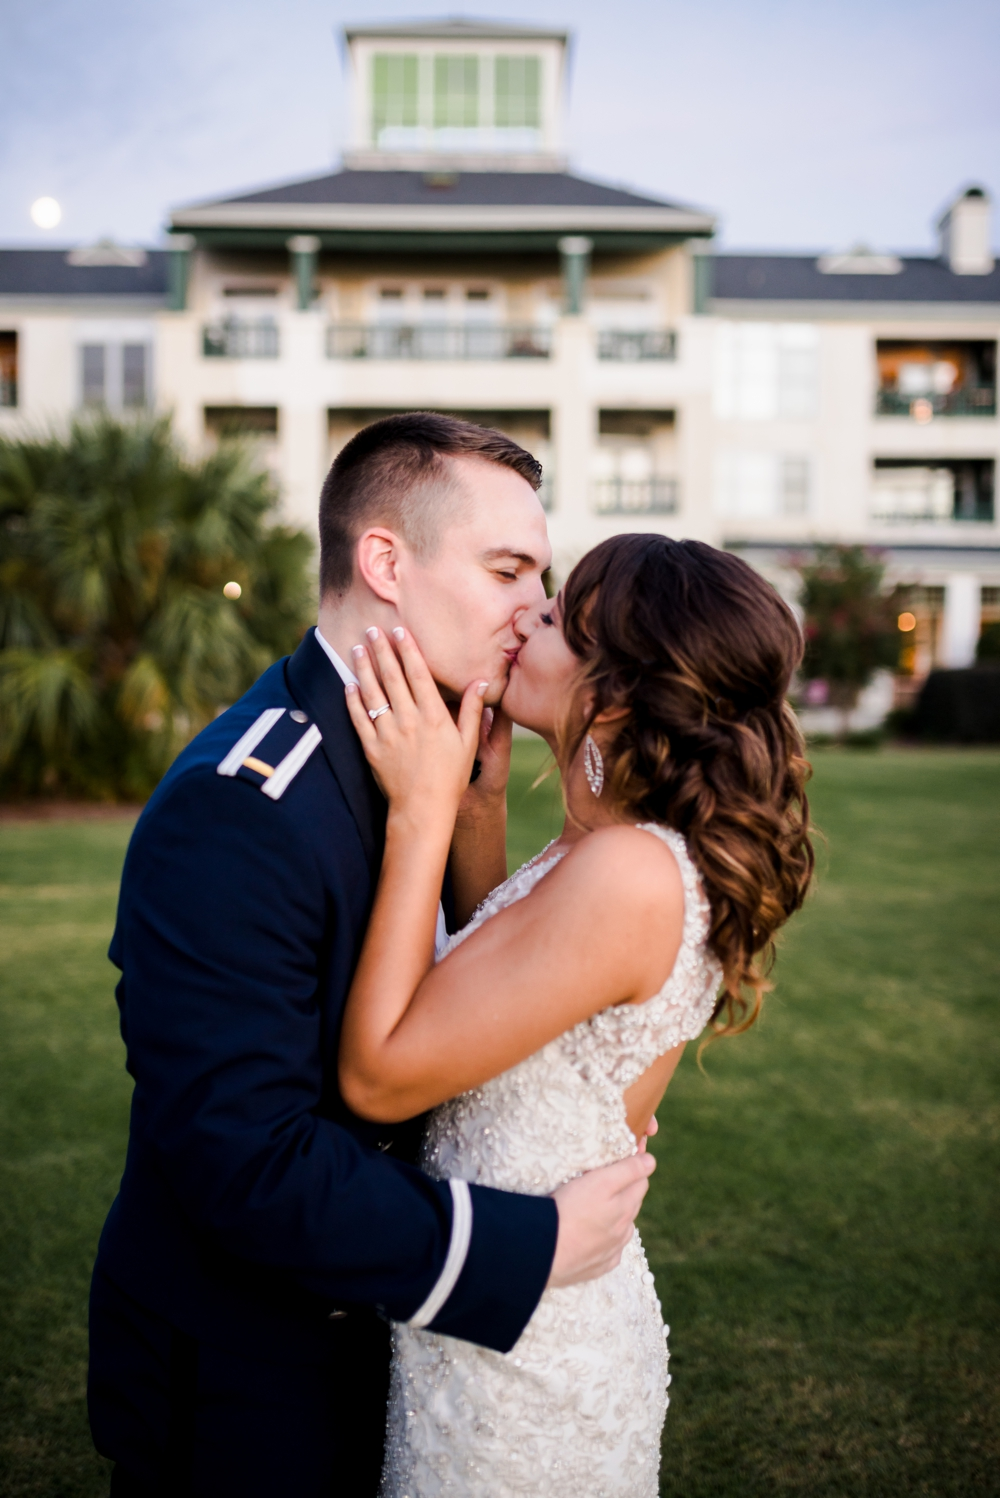 wallin-florida-wedding-photographer-kiersten-grant-180.jpg